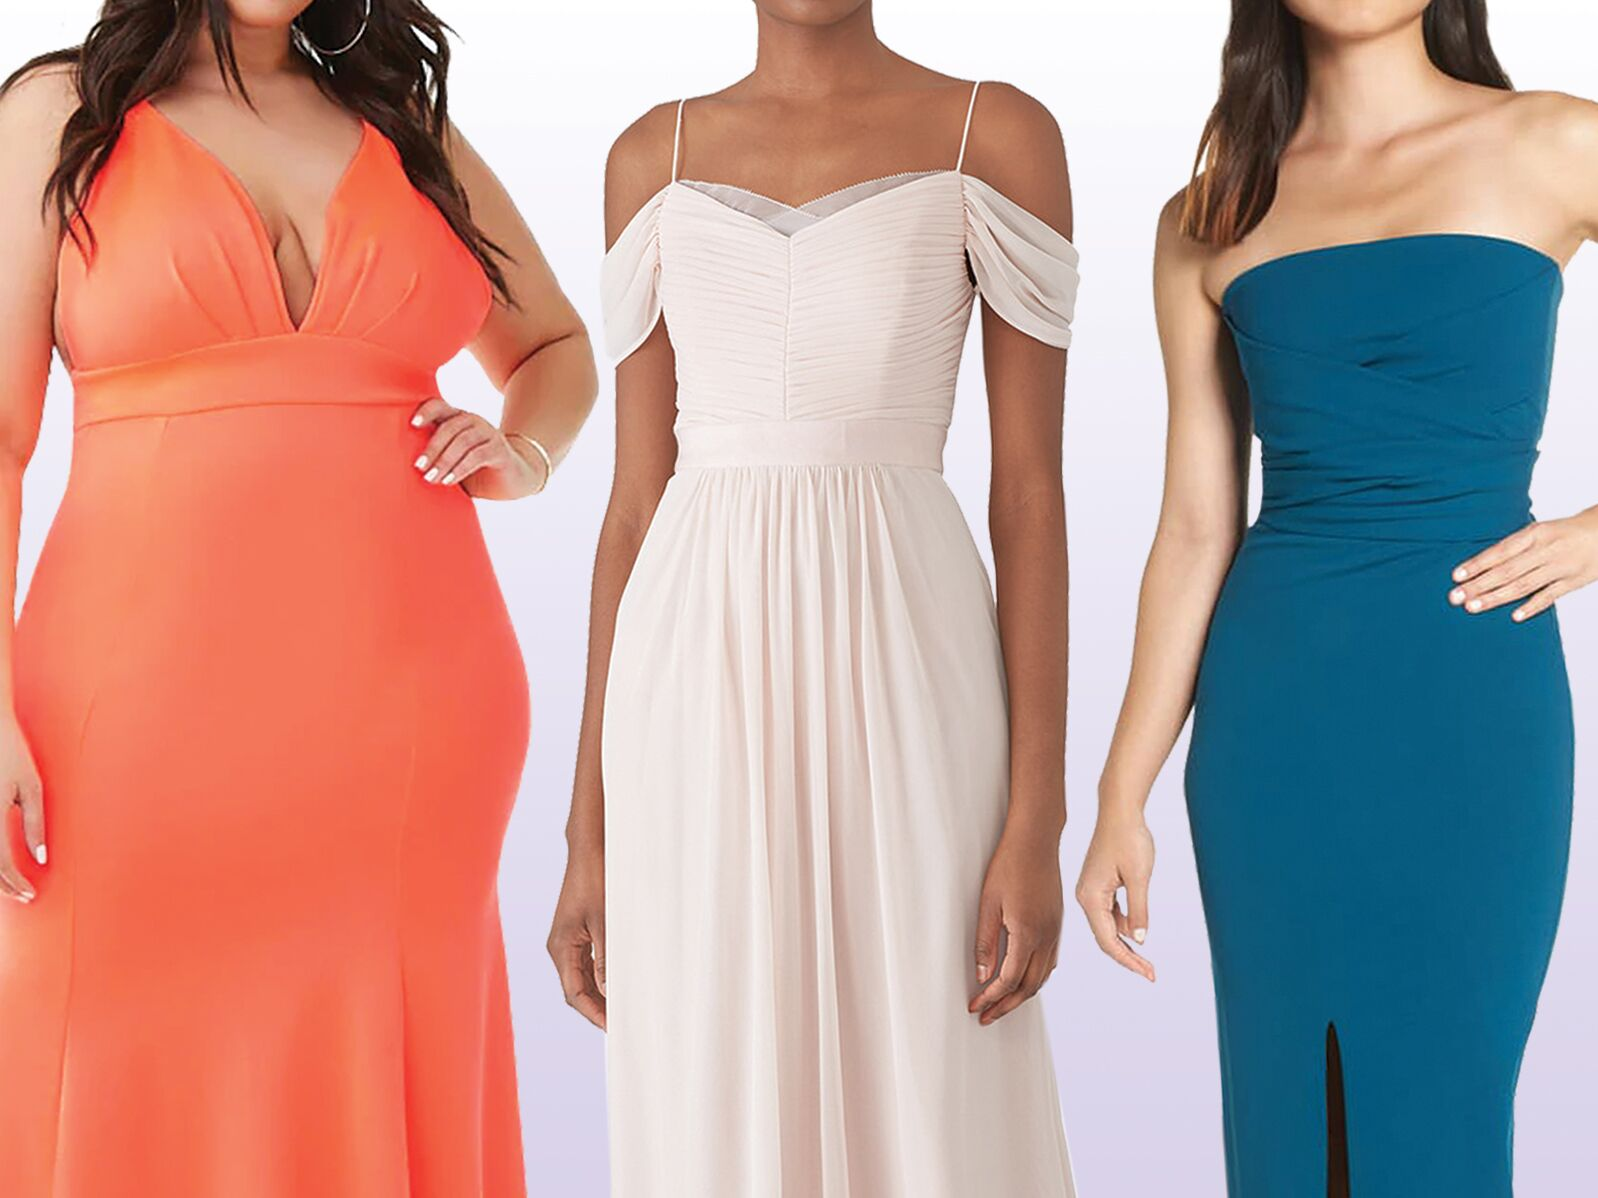 a1cf0108620d 55 Affordable Bridesmaid Dresses That Don't Look Cheap